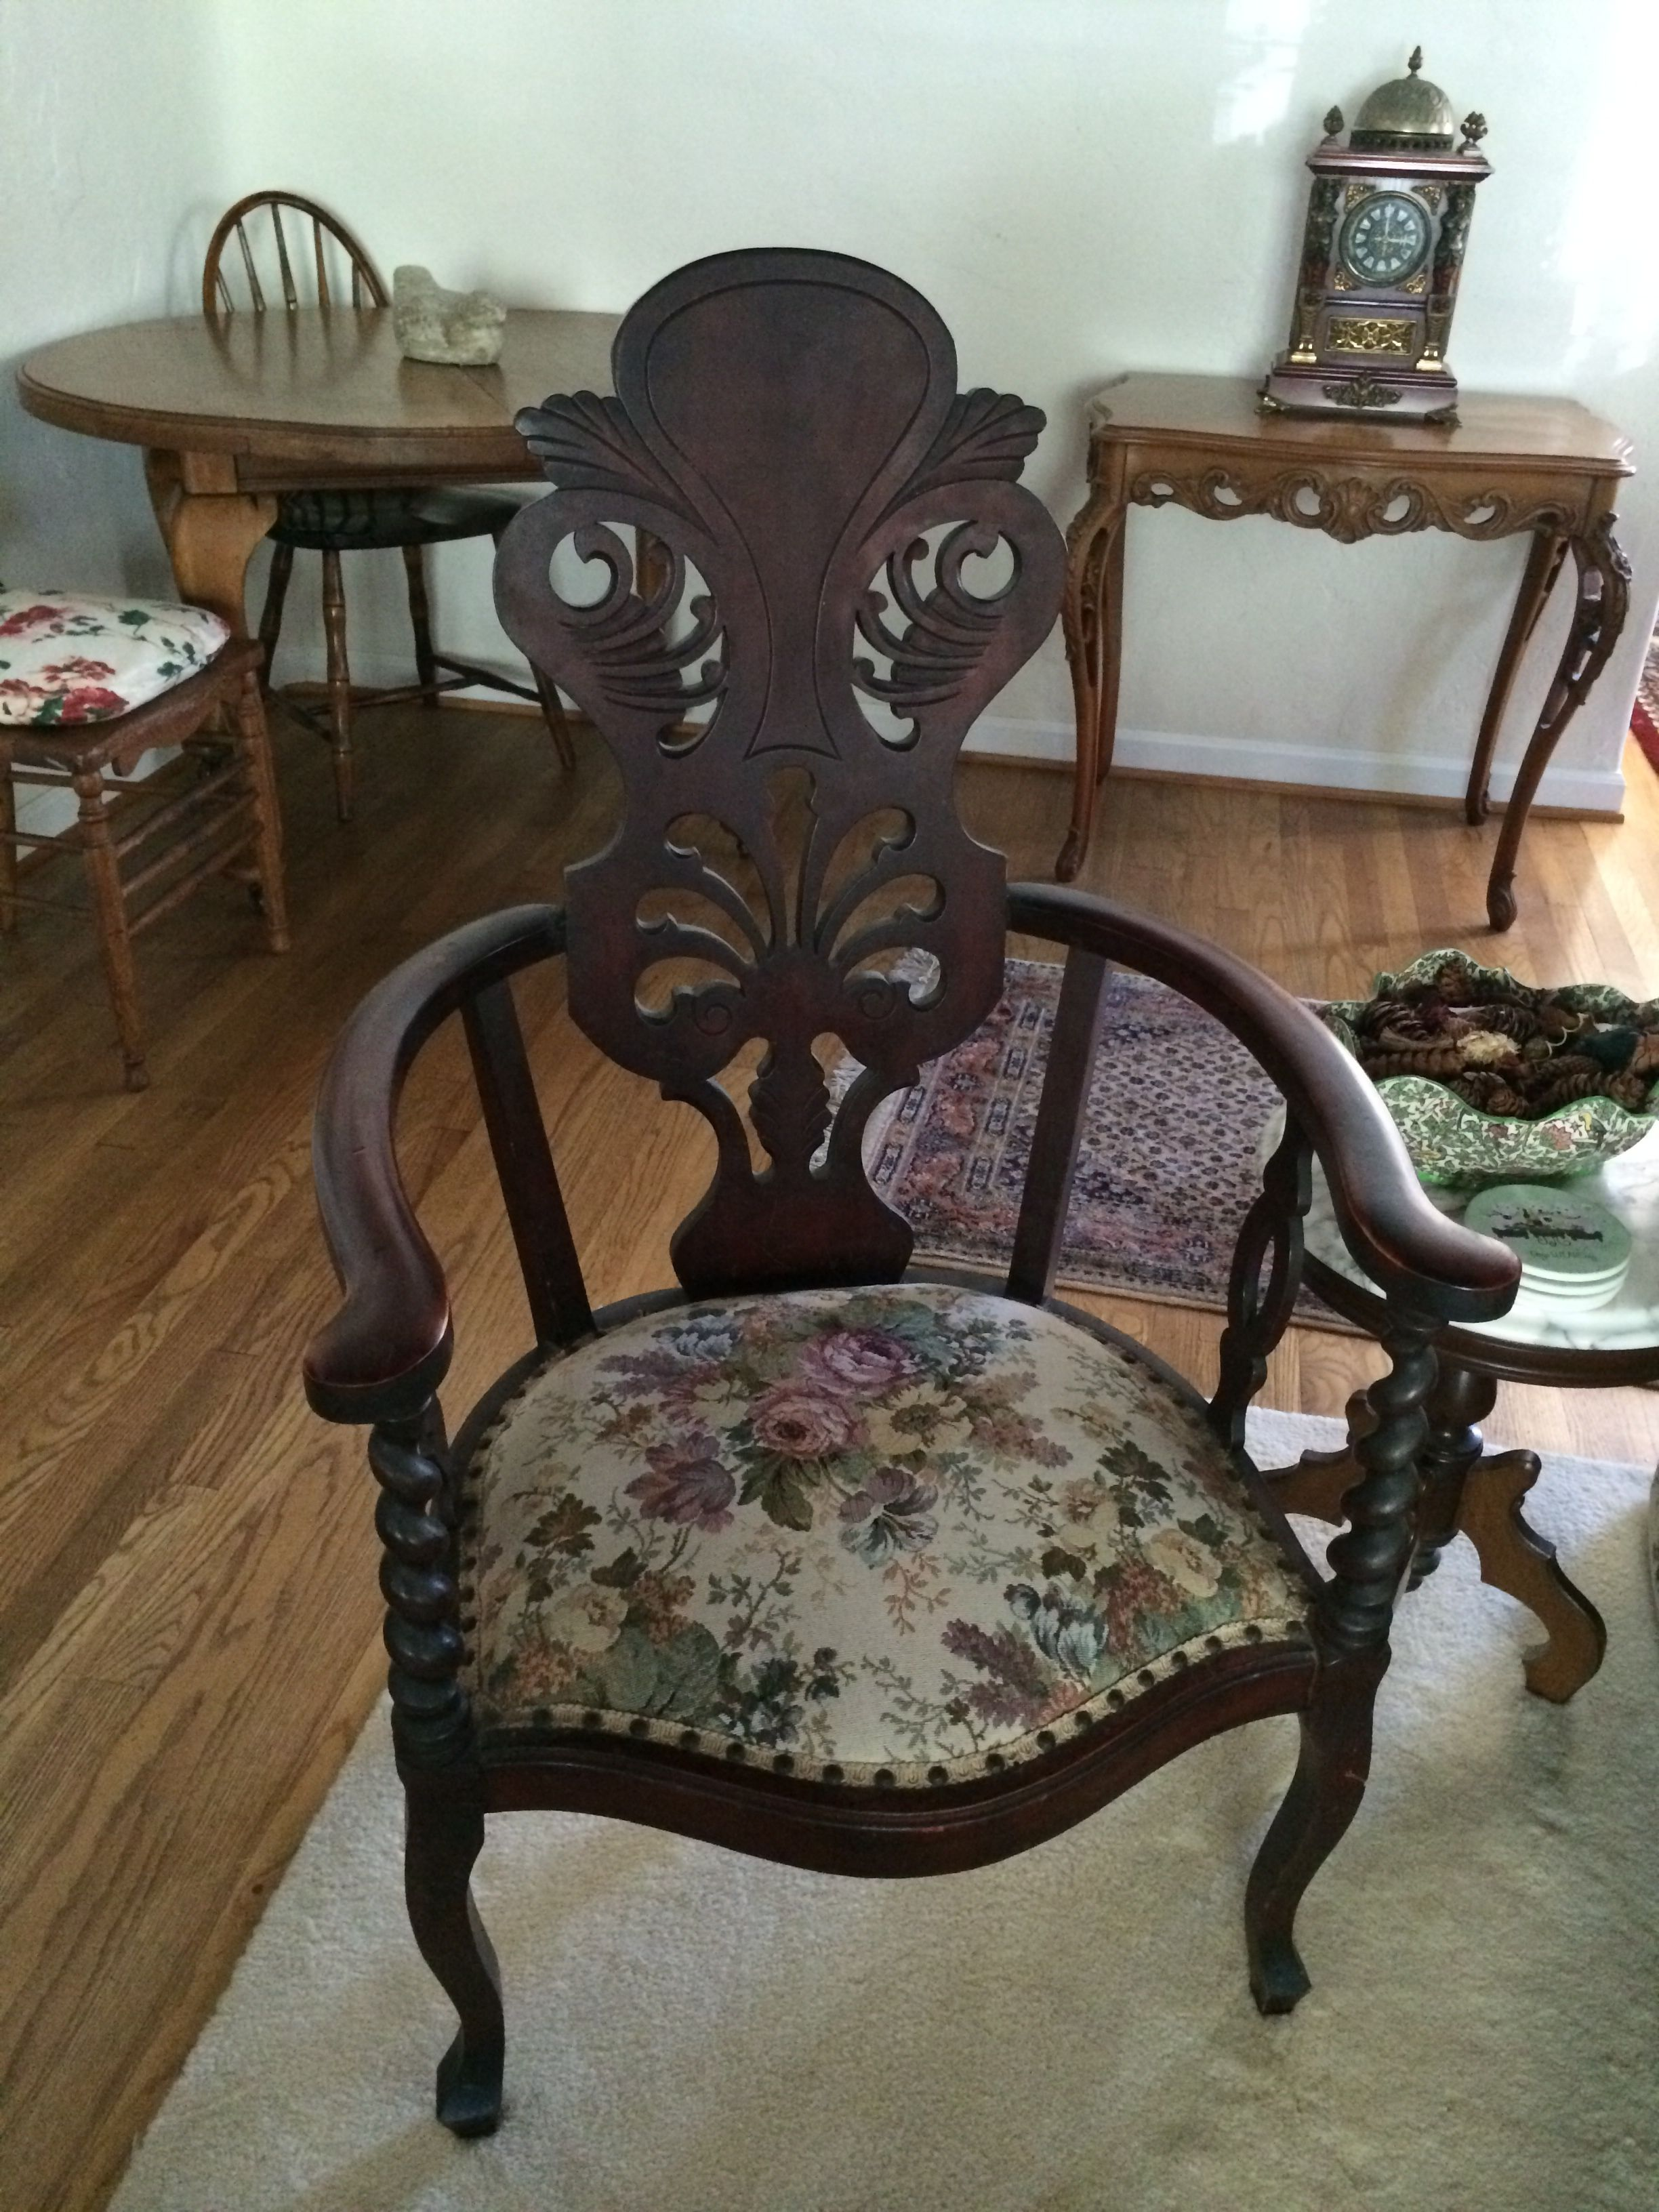 Before Grandma S Antique Empire Flame Mahogany Chair With Old Upholstery Pre Fabric Chalk Paint On Seat